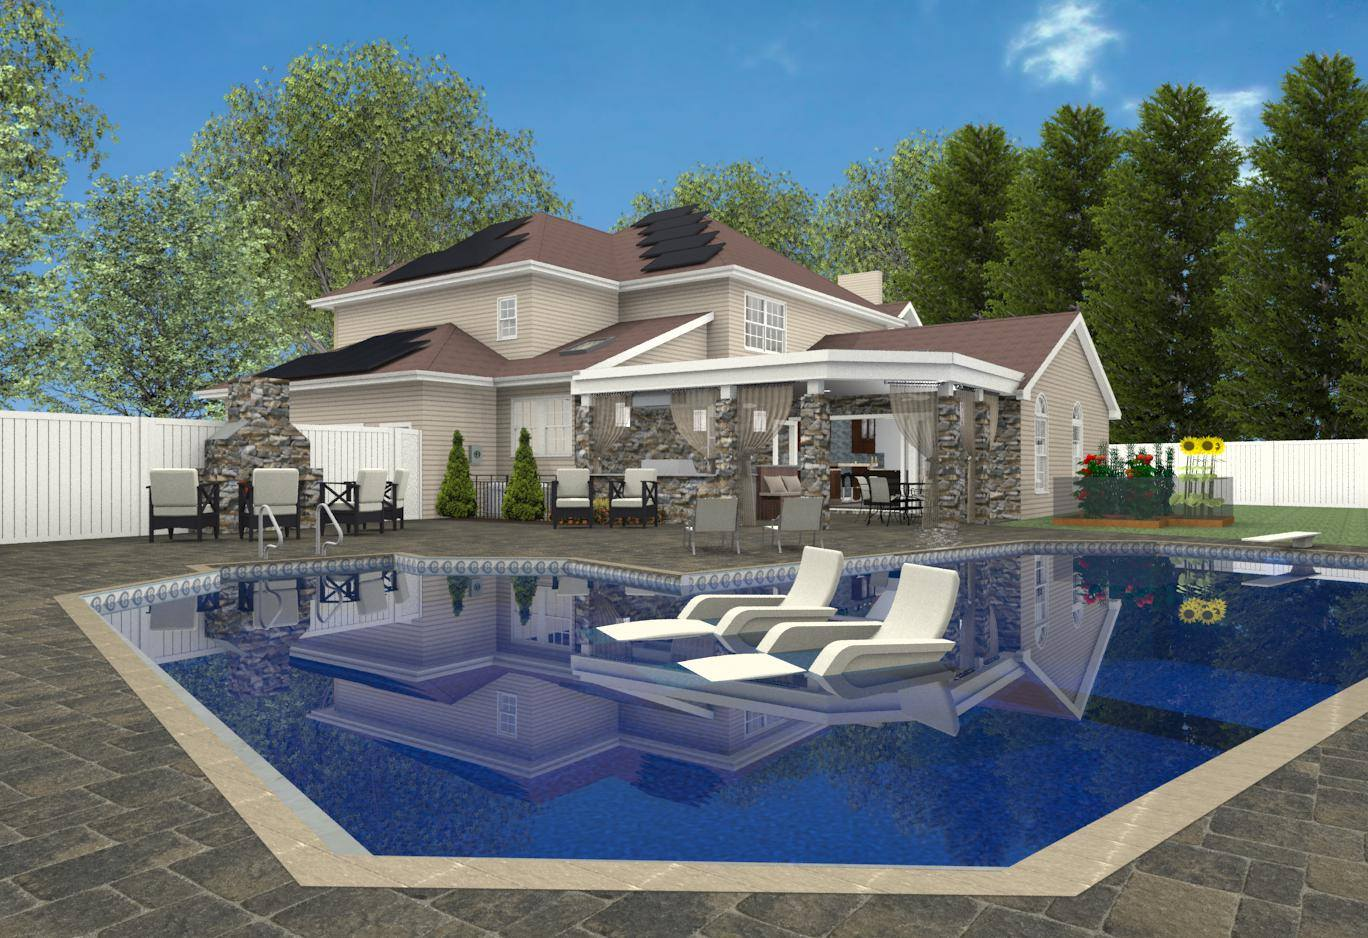 Creating a backyard oasis in suburban new jersey for Pool house additions